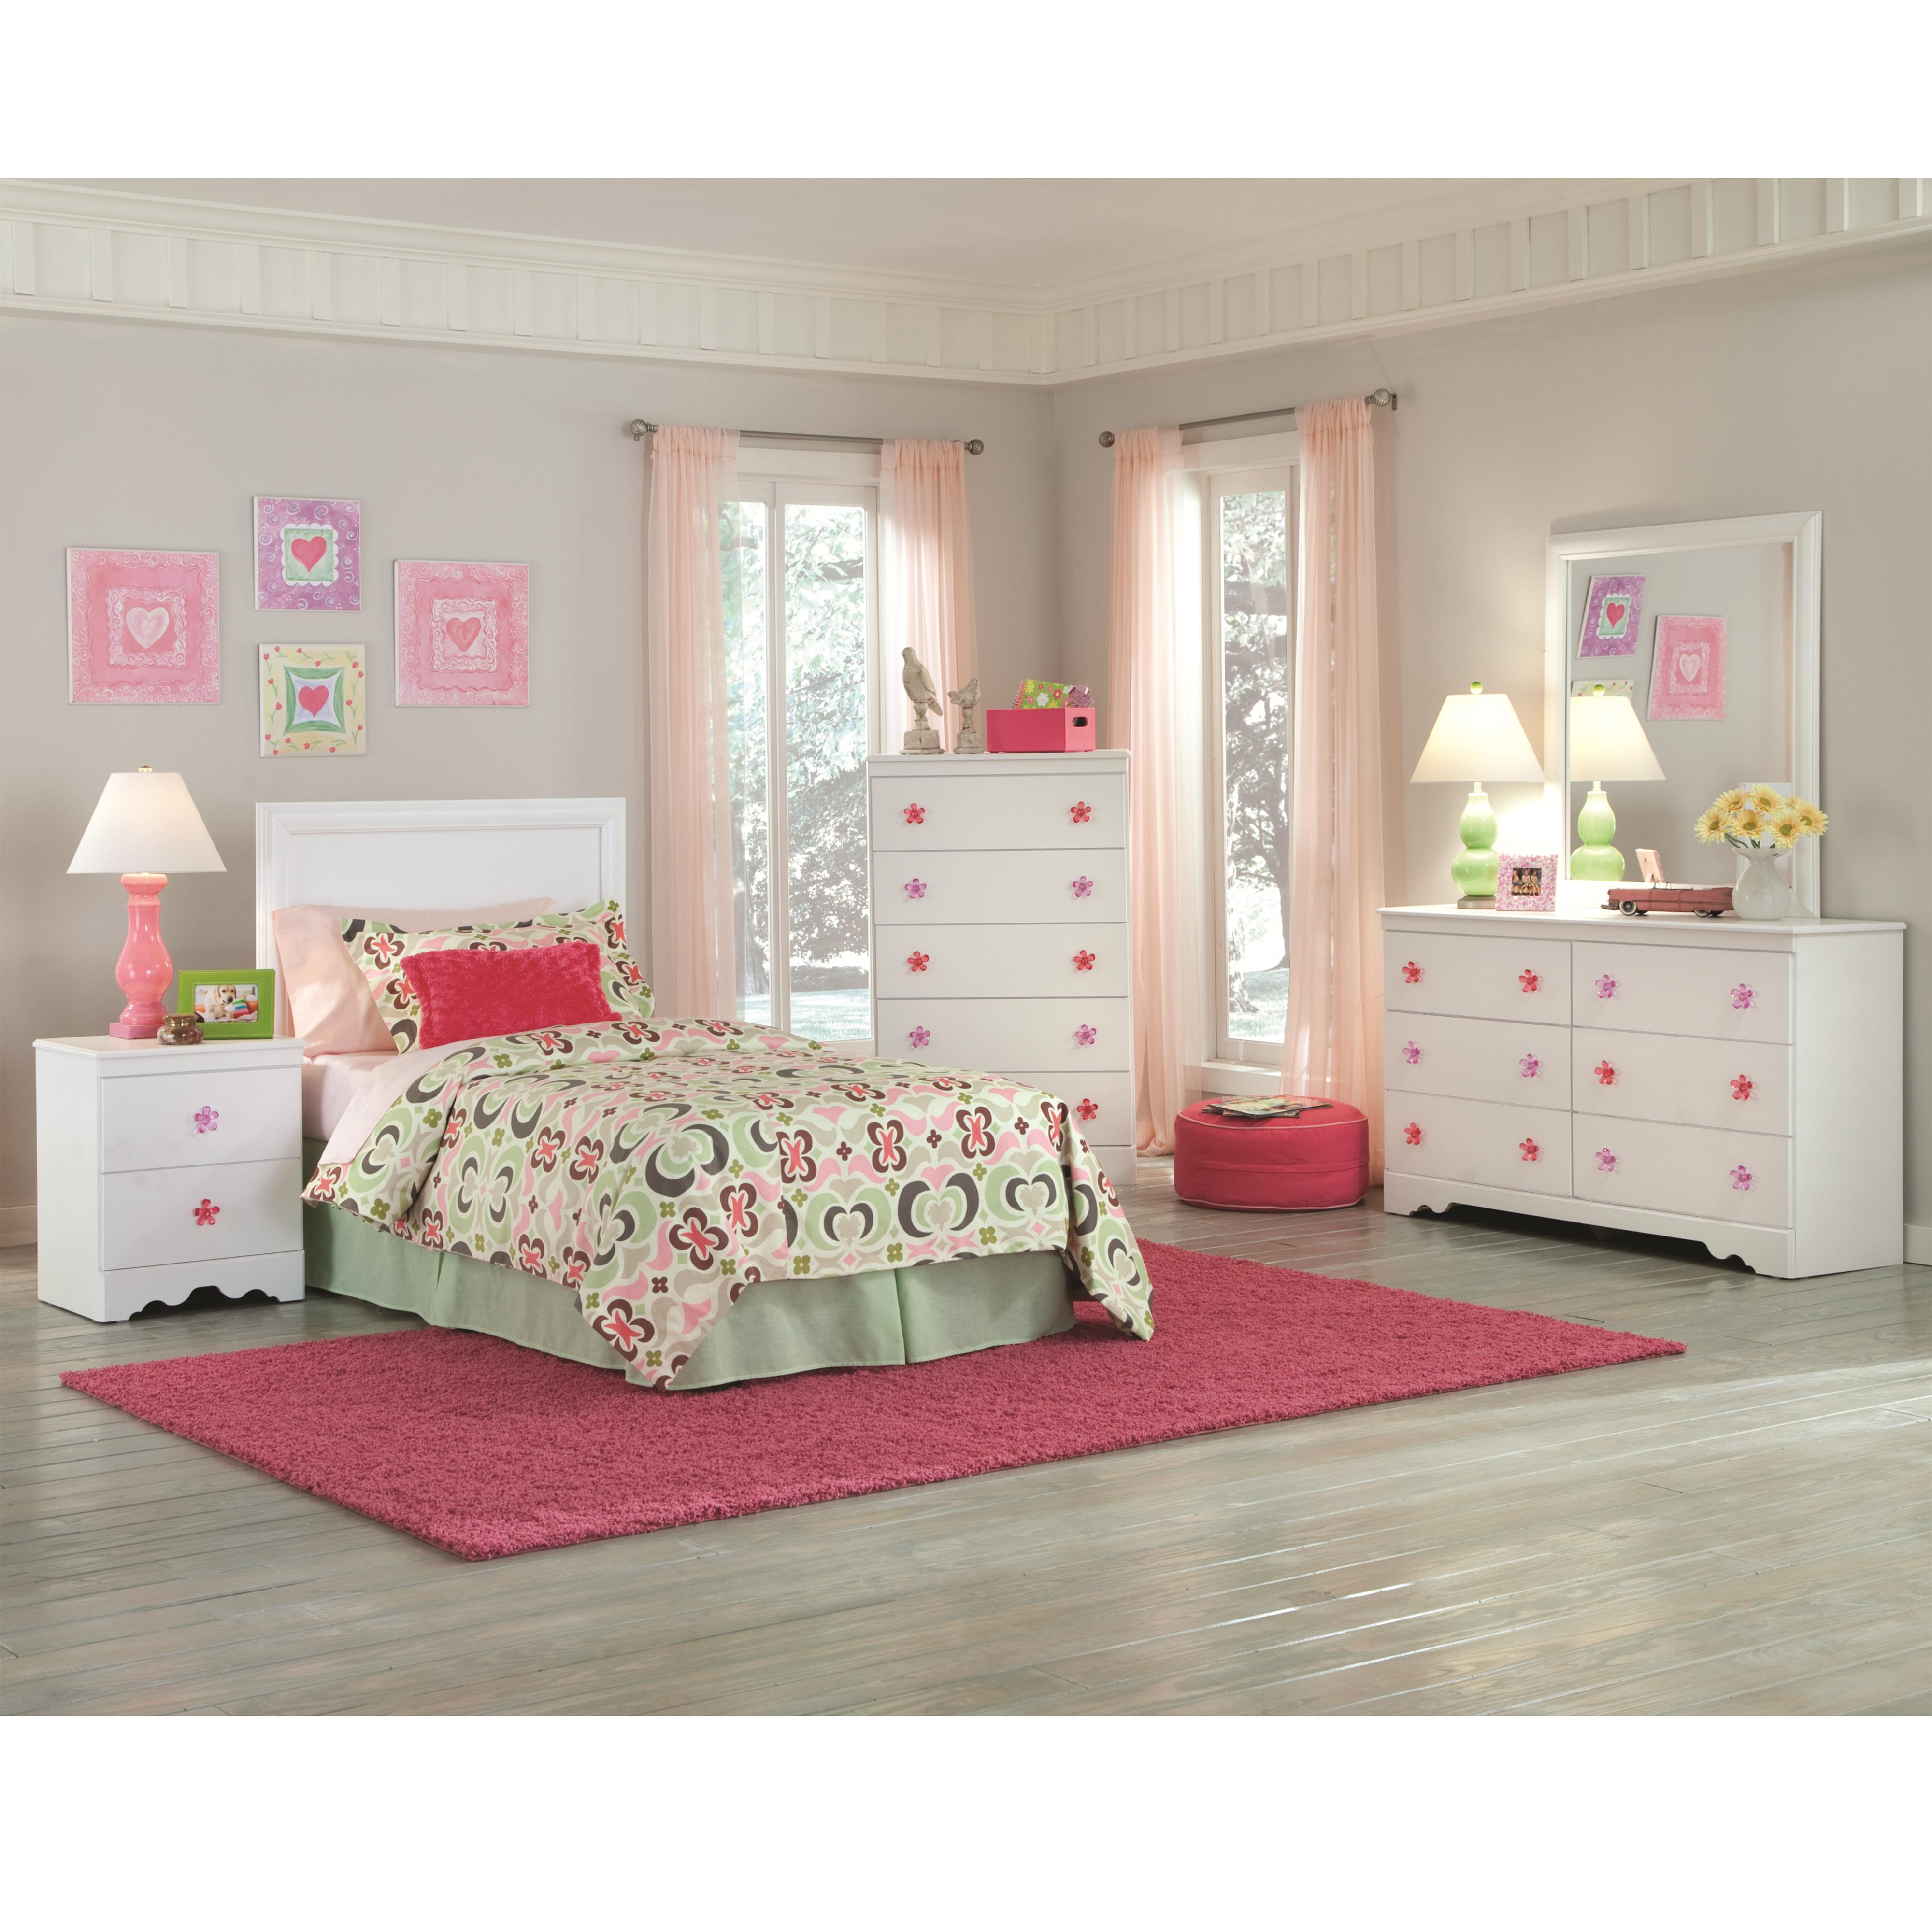 Kith Furniture Savannah 2 Drawer Night Stand With Flower Shaped Handles |  Standard Furniture | Night Stand Birmingham, Huntsville, Hoover, Decatur,  ...